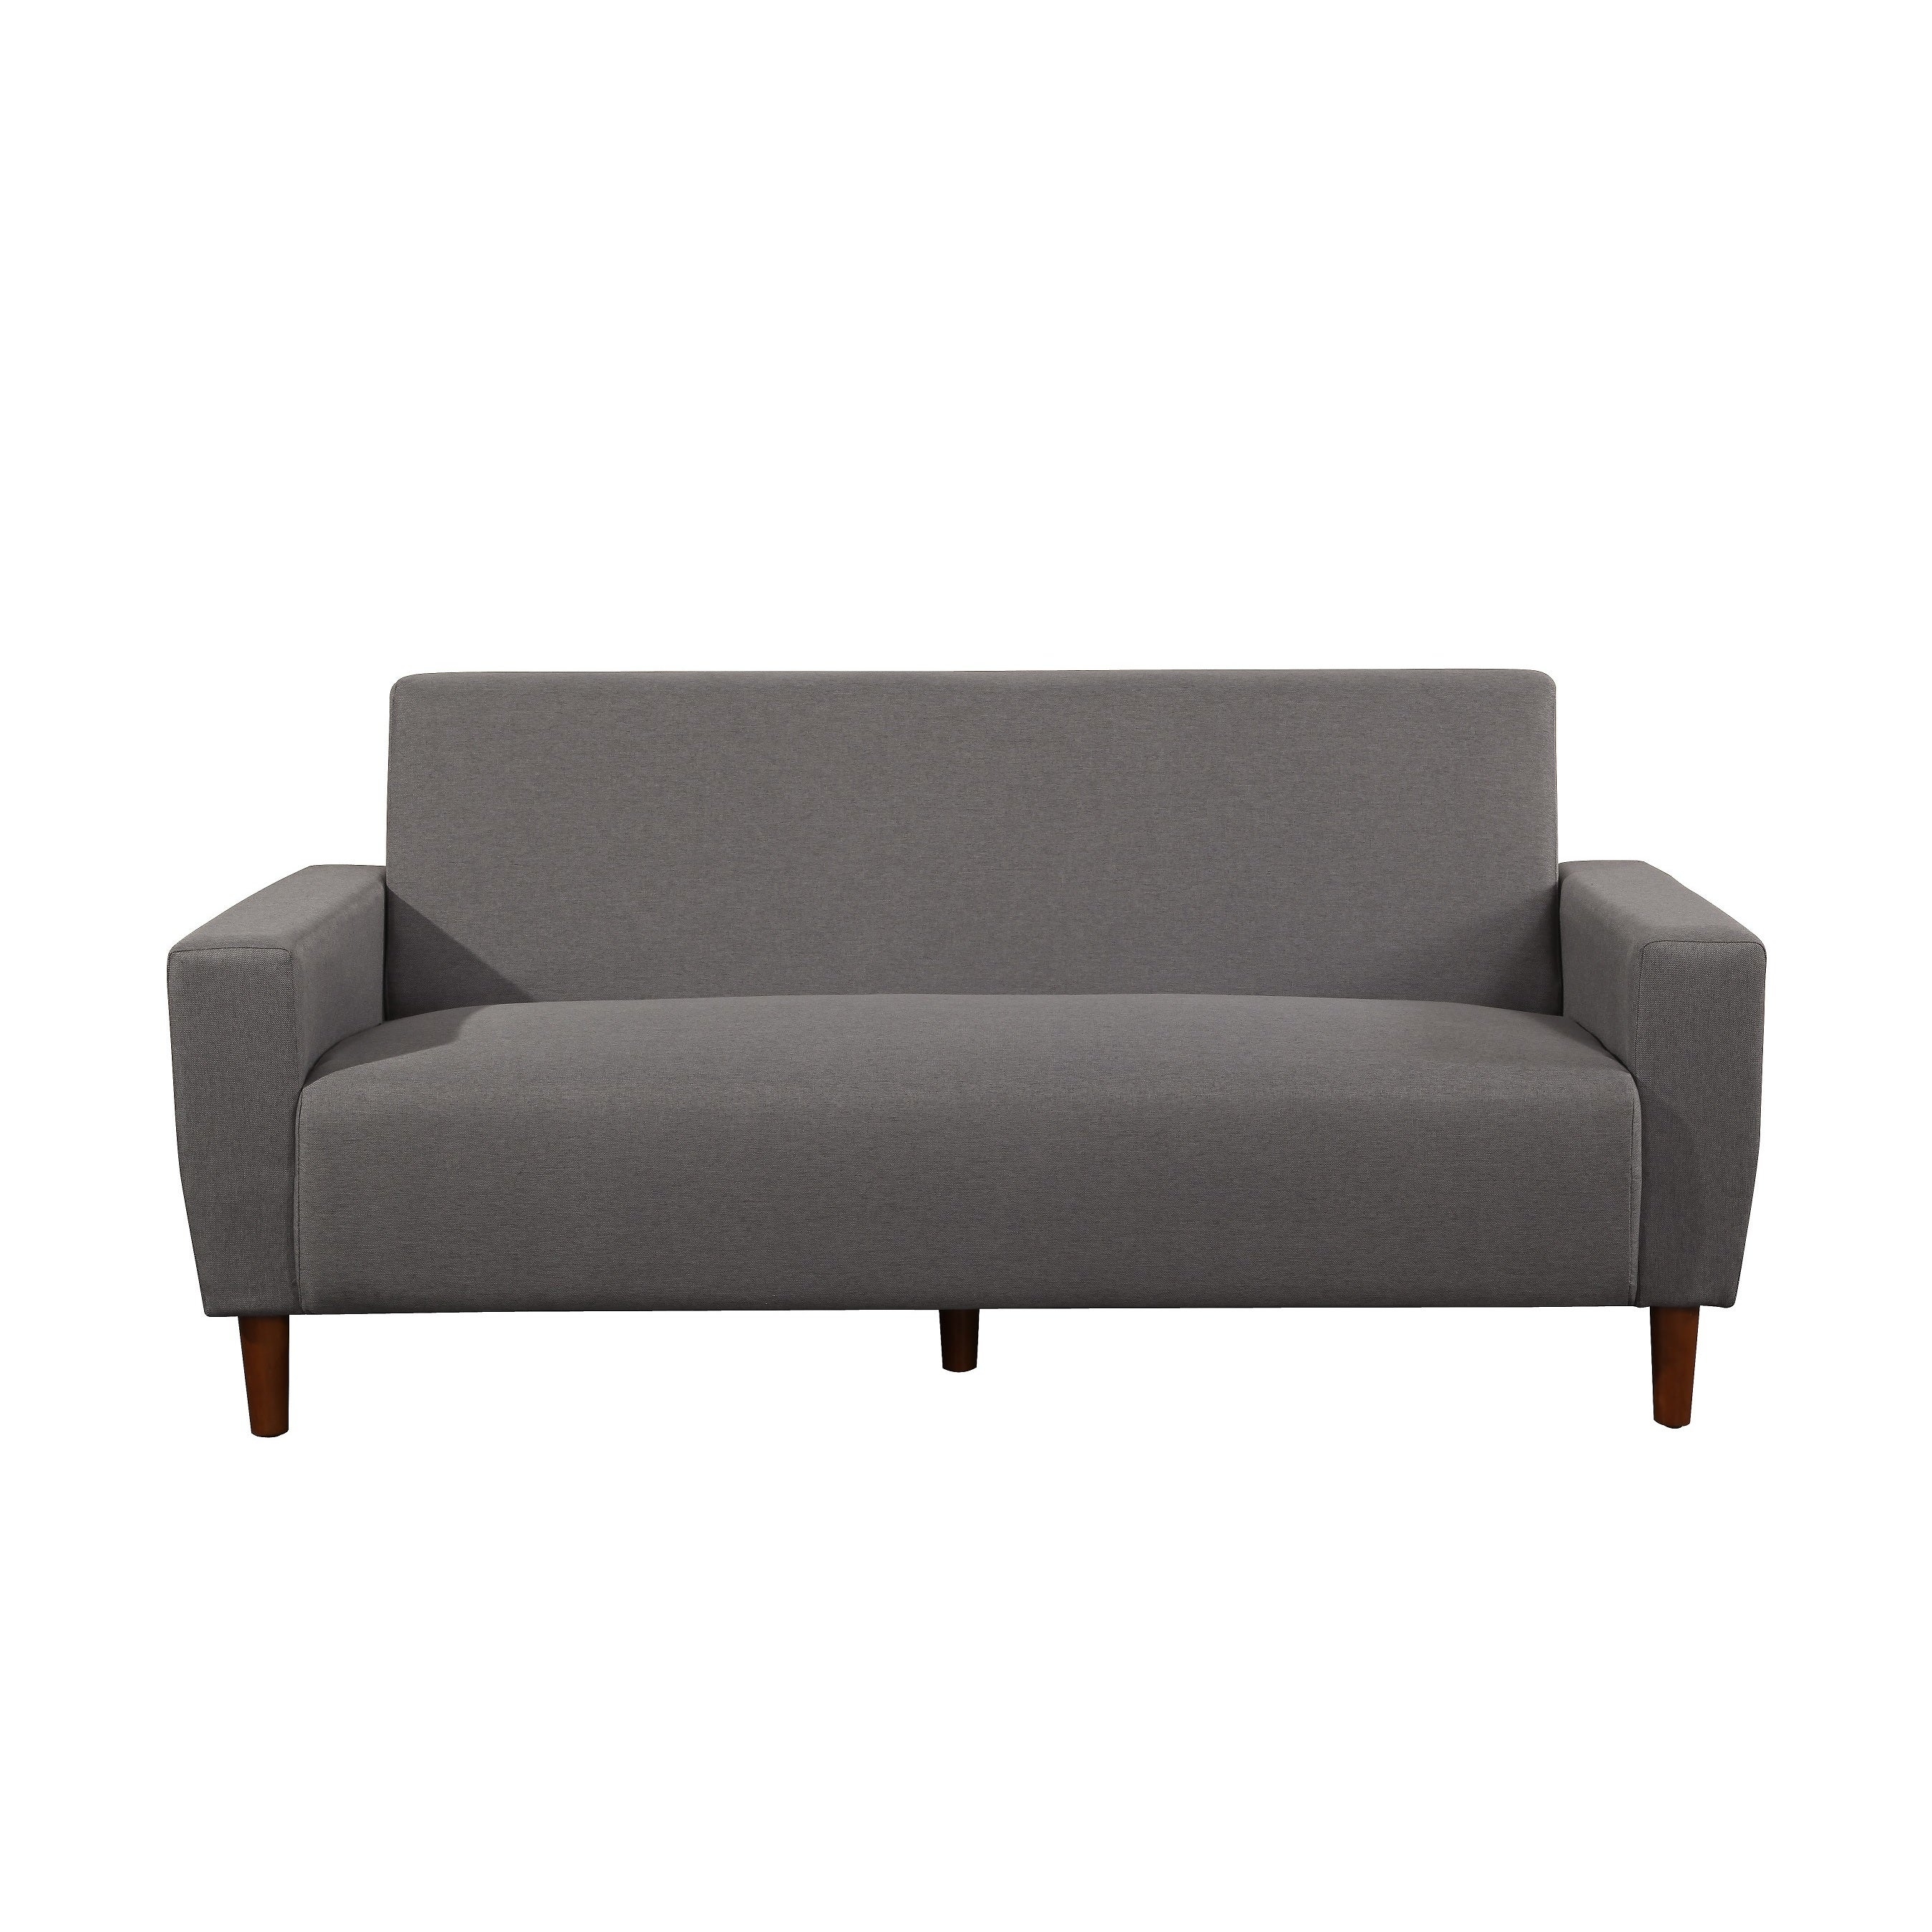 Shop ruth mid century linen fabric sofa on sale free shipping today overstock com 16340645